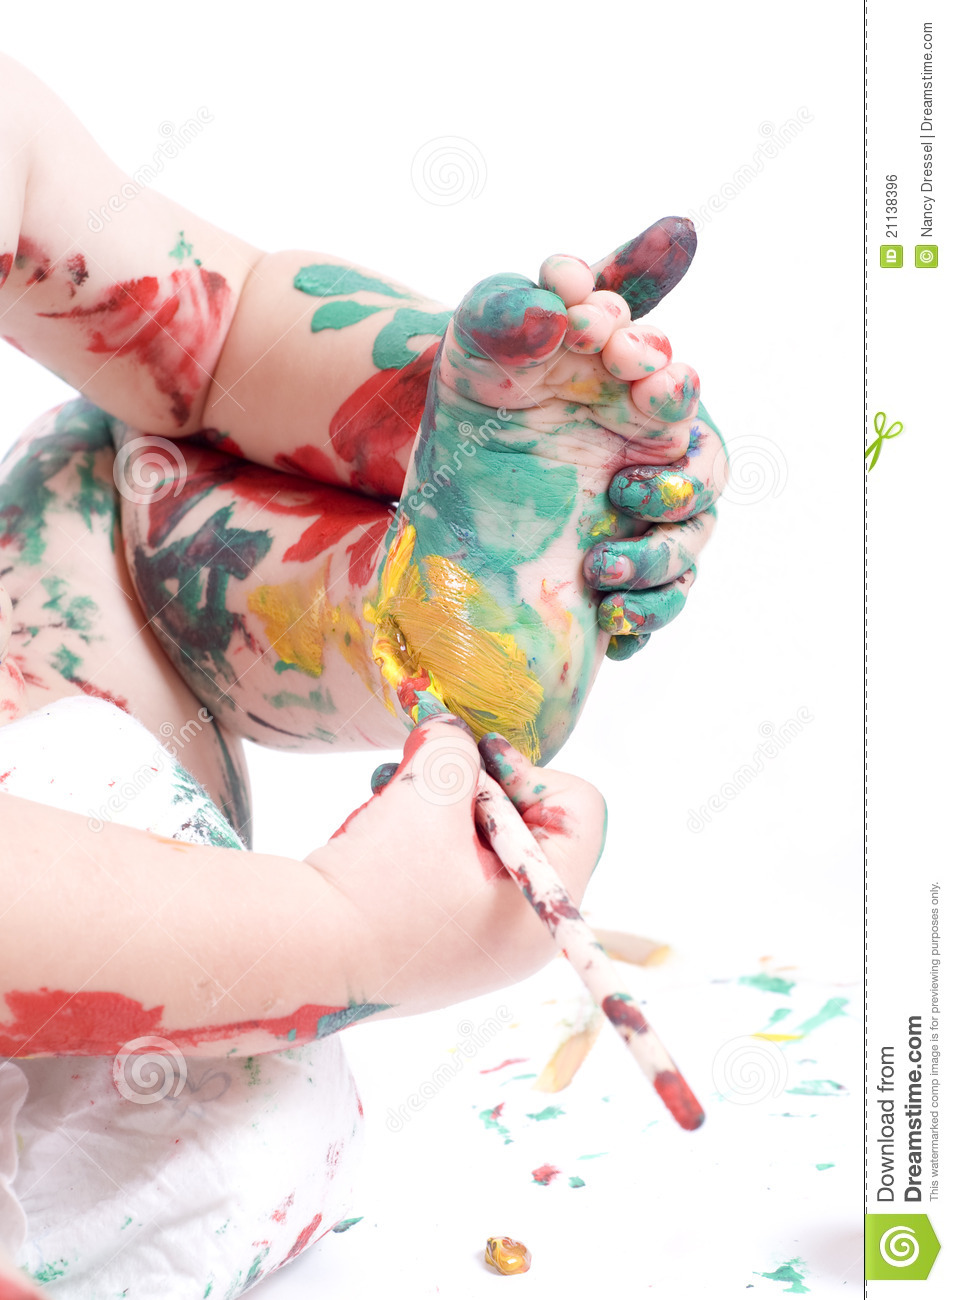 Child painting its feet